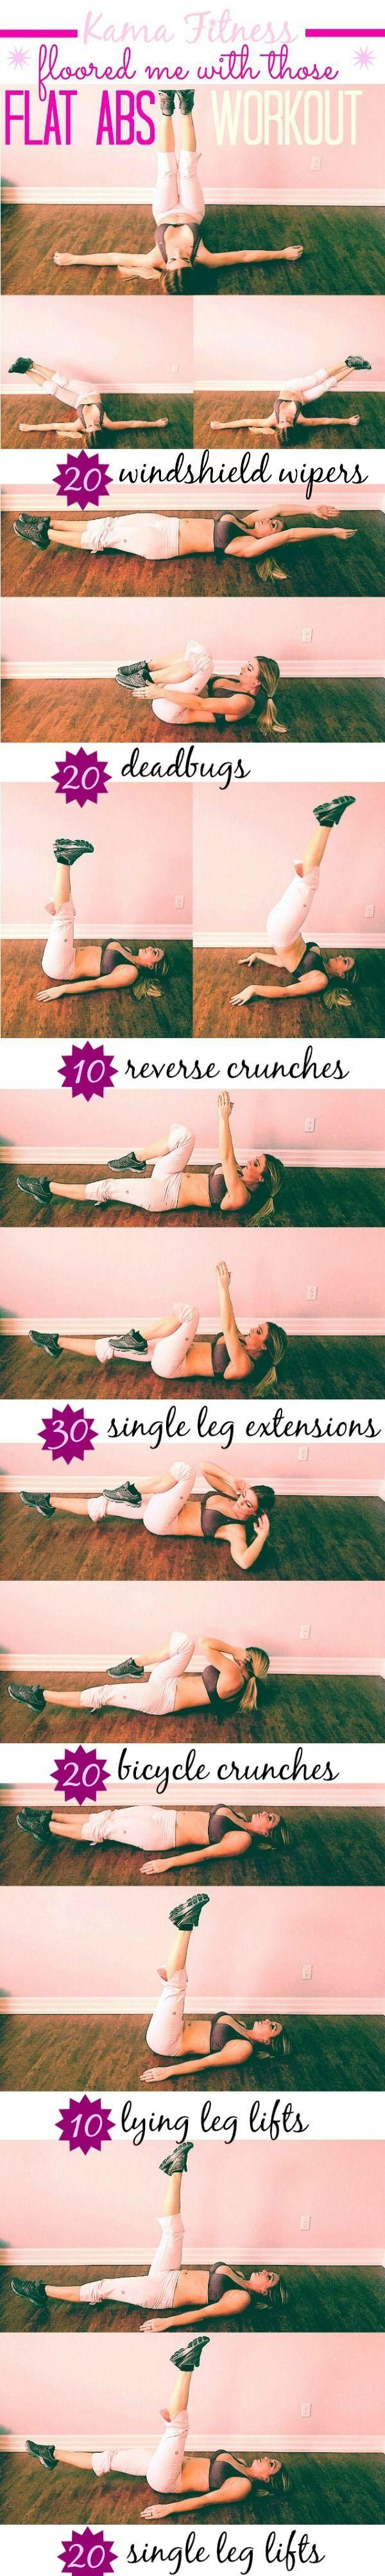 Floor flat ab workout workout regime pinterest for Floor exercises for abs